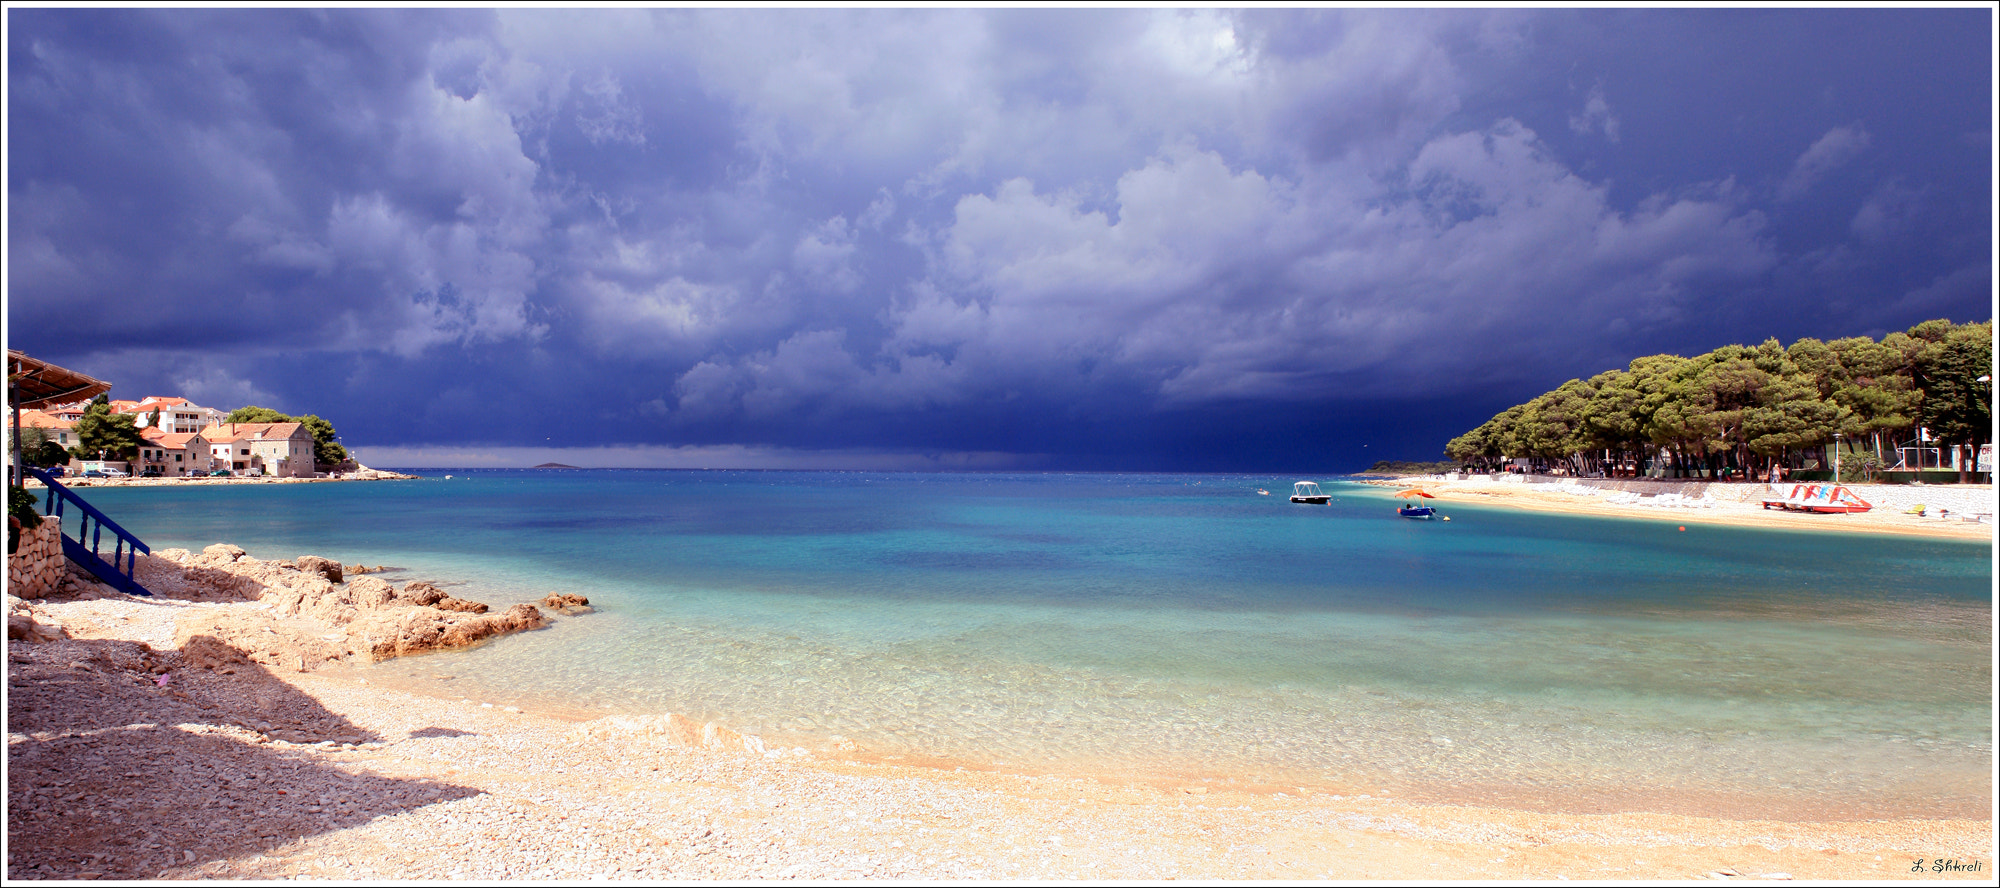 Photograph Before the storm by Luigi Shkreli on 500px